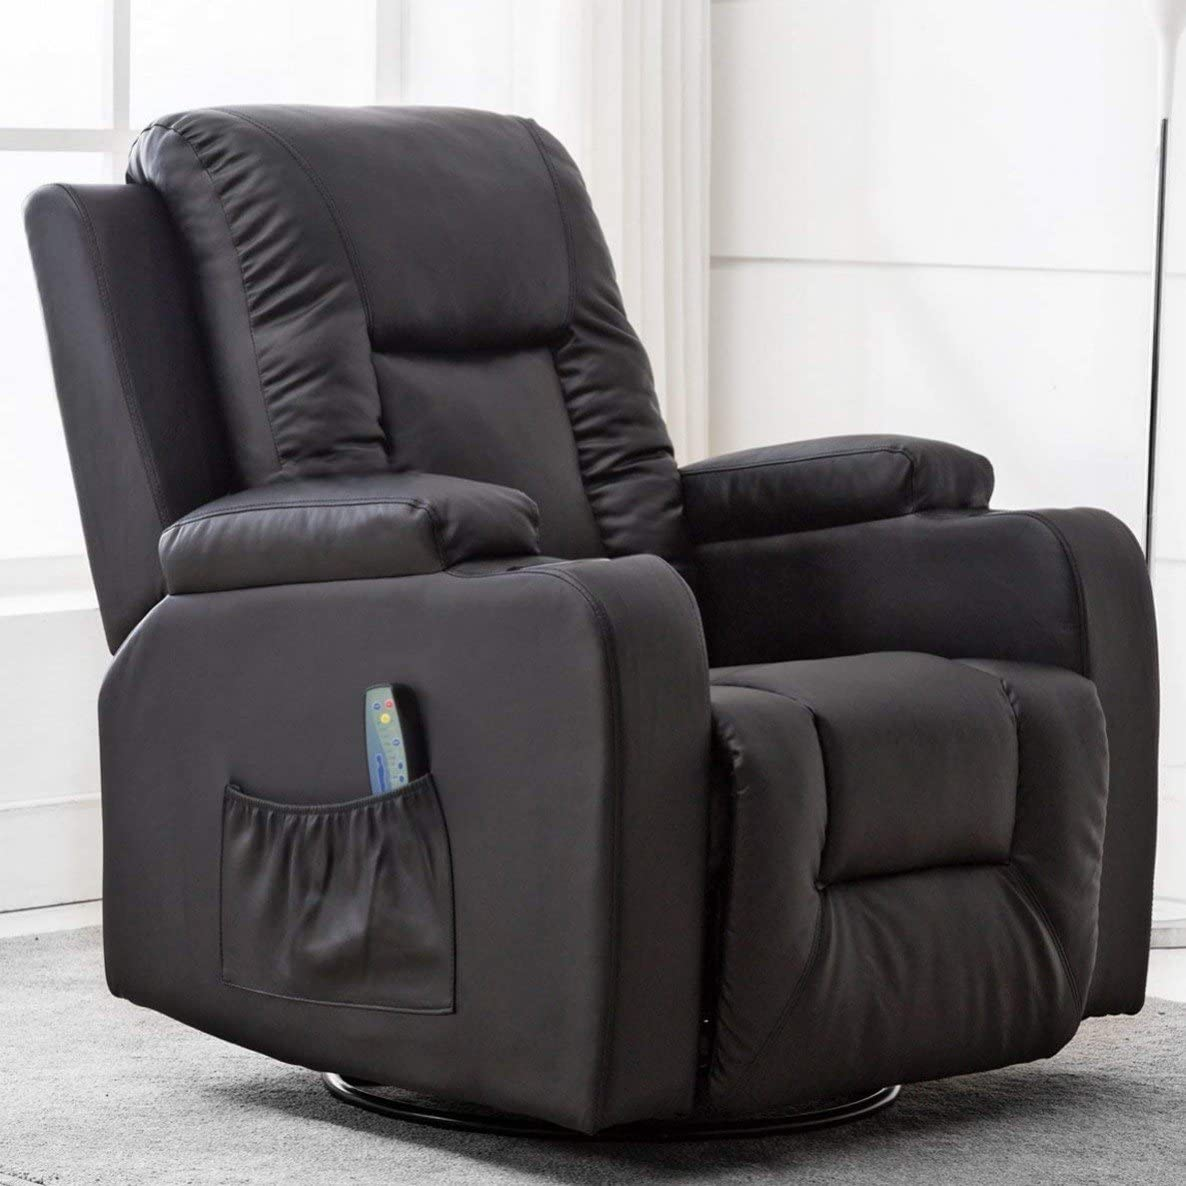 ComHoma Leather Recliner Chair Modern Rocker with Heated Massage Ergonomic Lounge 360 Degree Swivel Single Sofa Seat with Drink Holders Living Room Chair Black